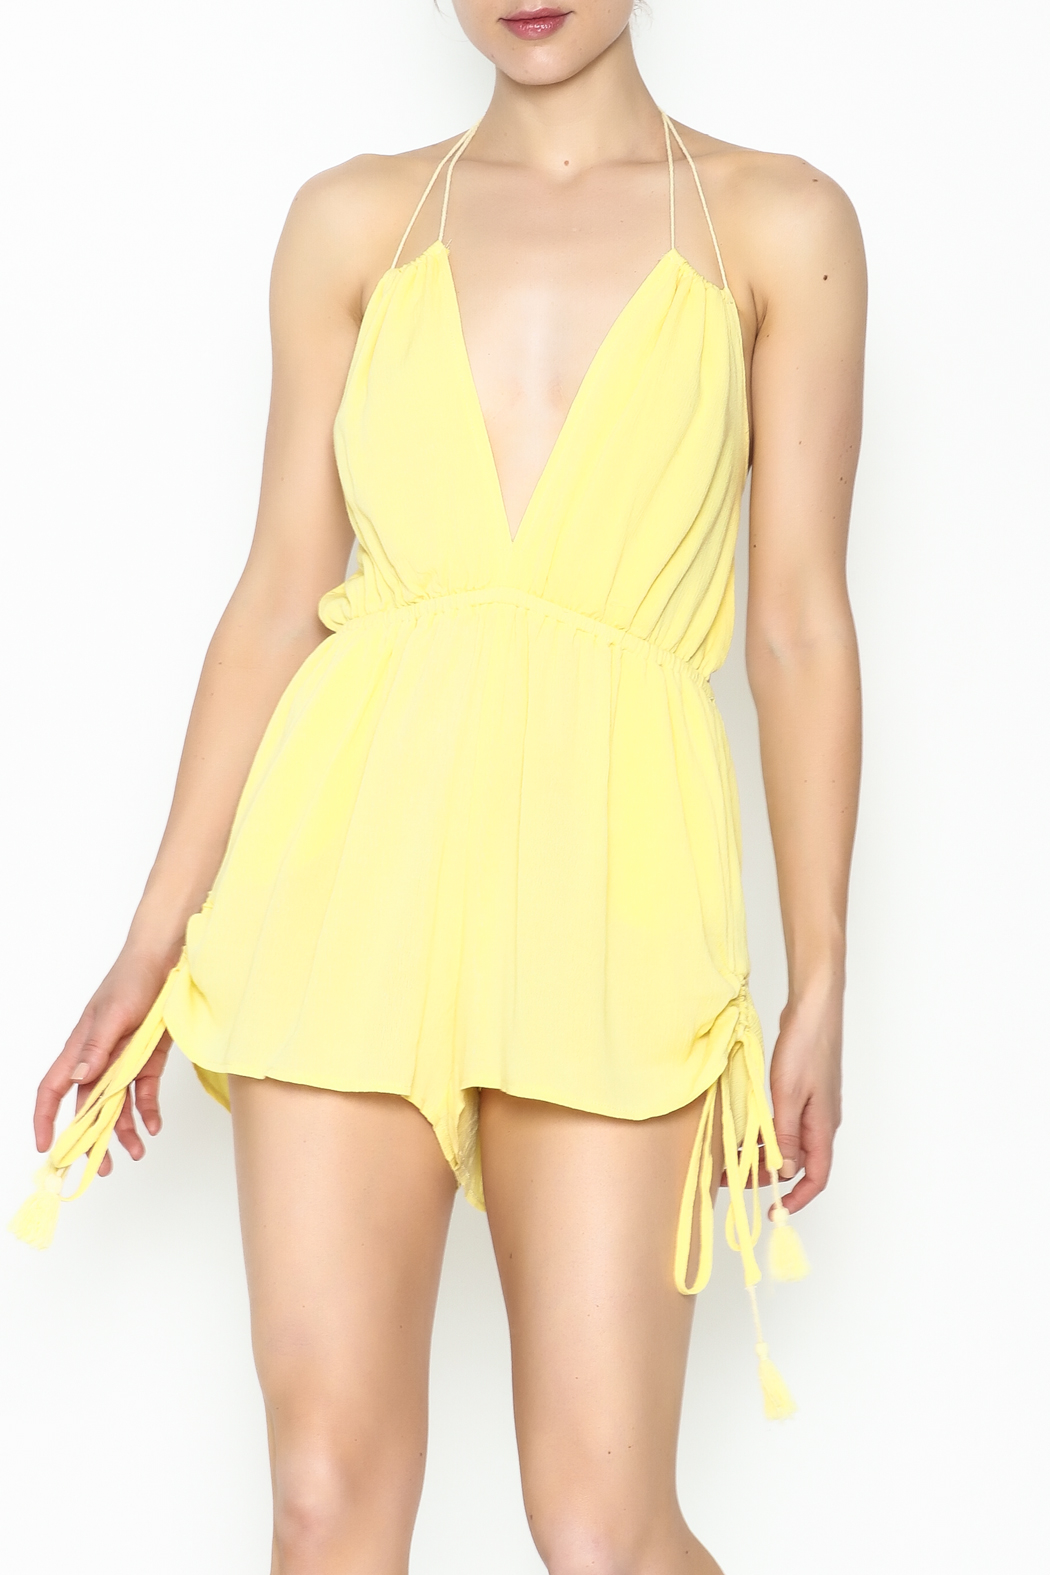 luxxel Yellow Strappy Romper - Main Image